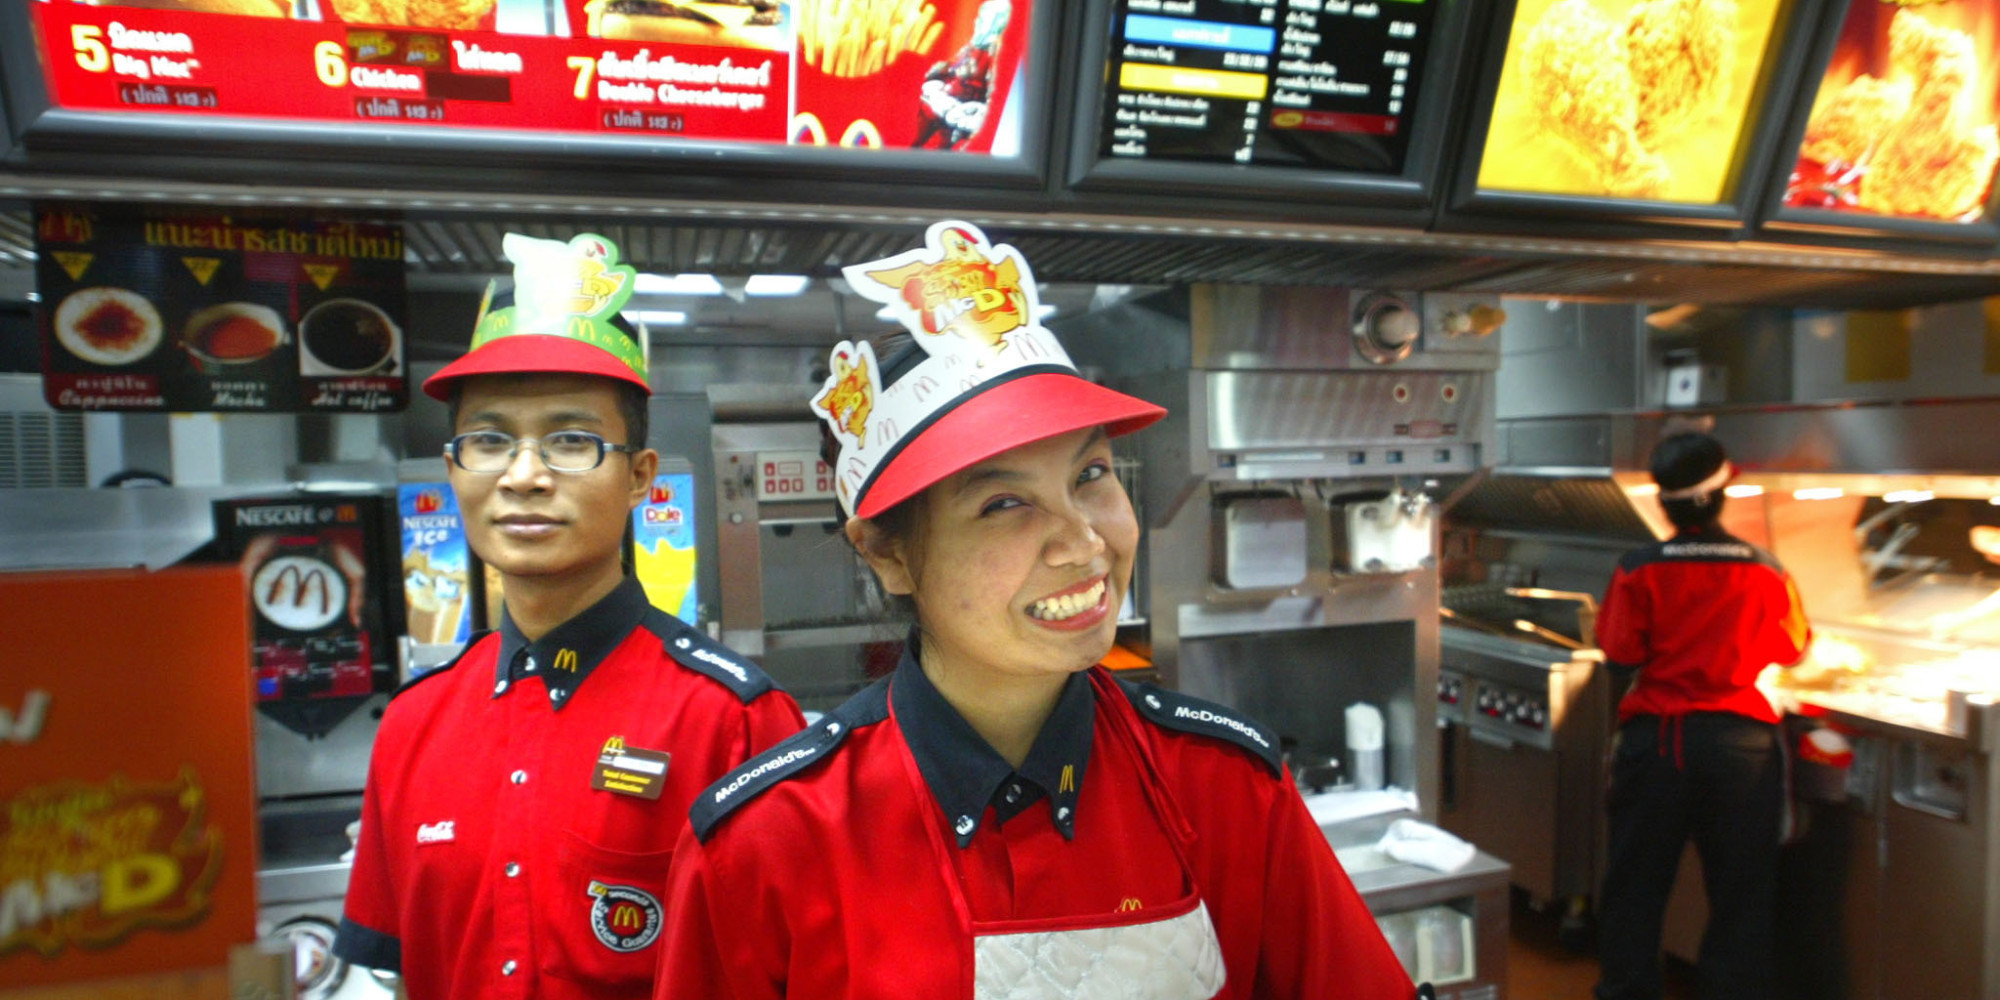 mcdonalds cashier mcdonald cashier job description bestjobdescriptionscom